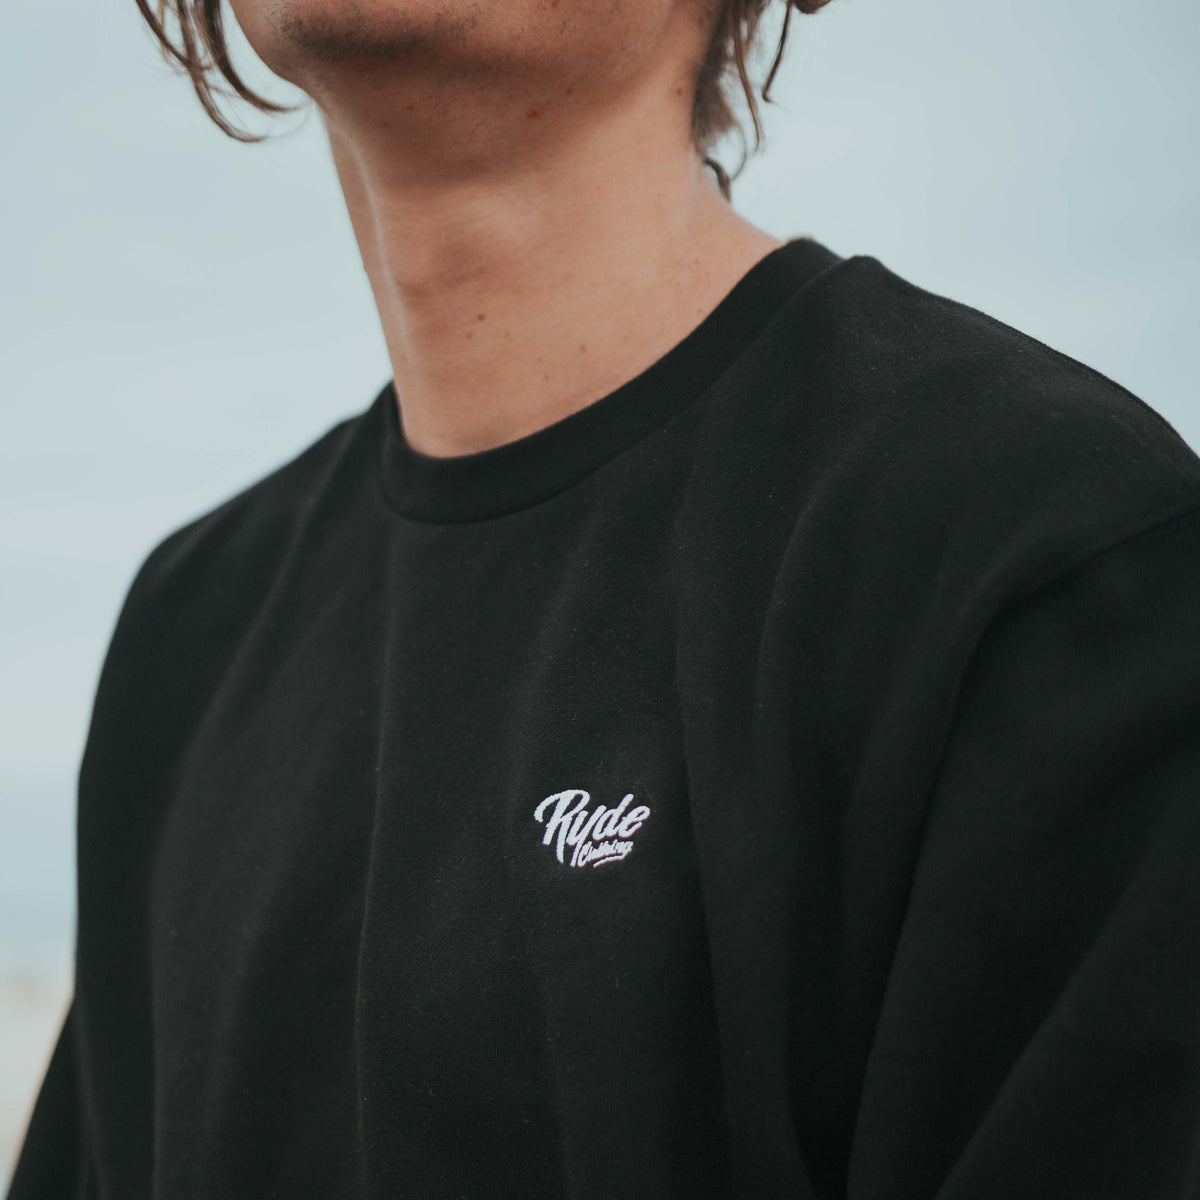 Ryde Embroidered Crew